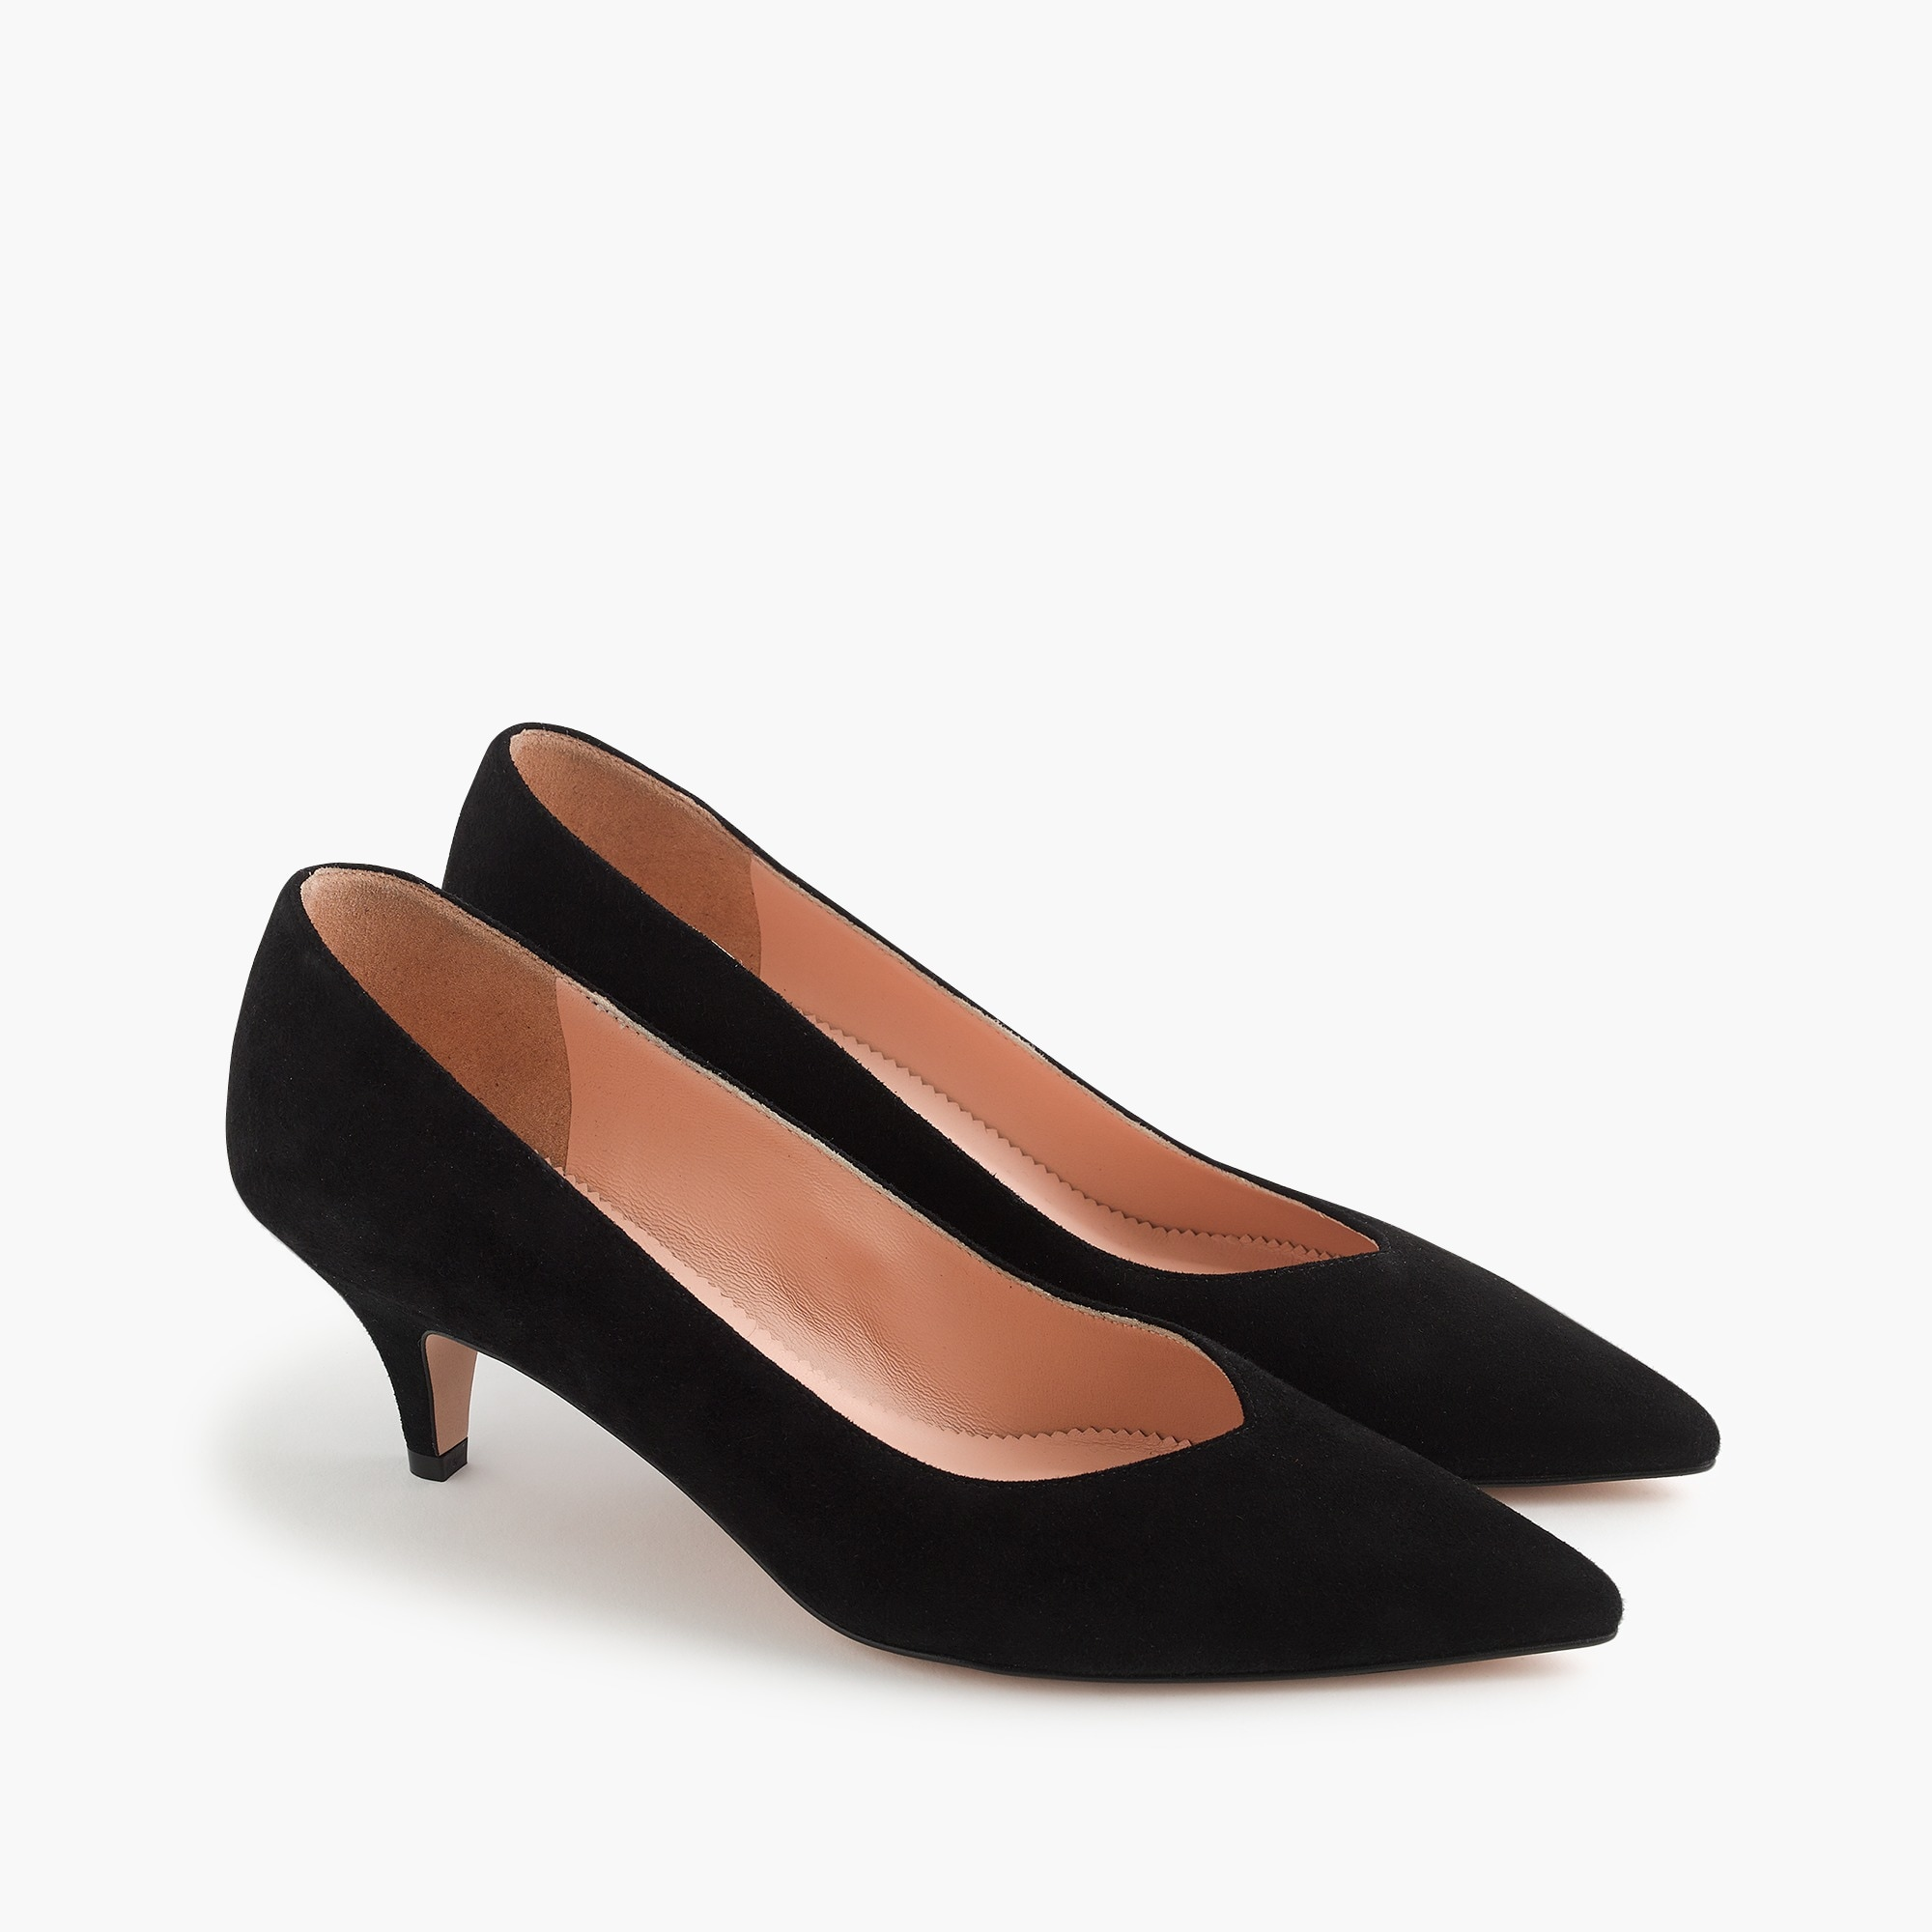 womens Dulci V-cut kitten heels in suede